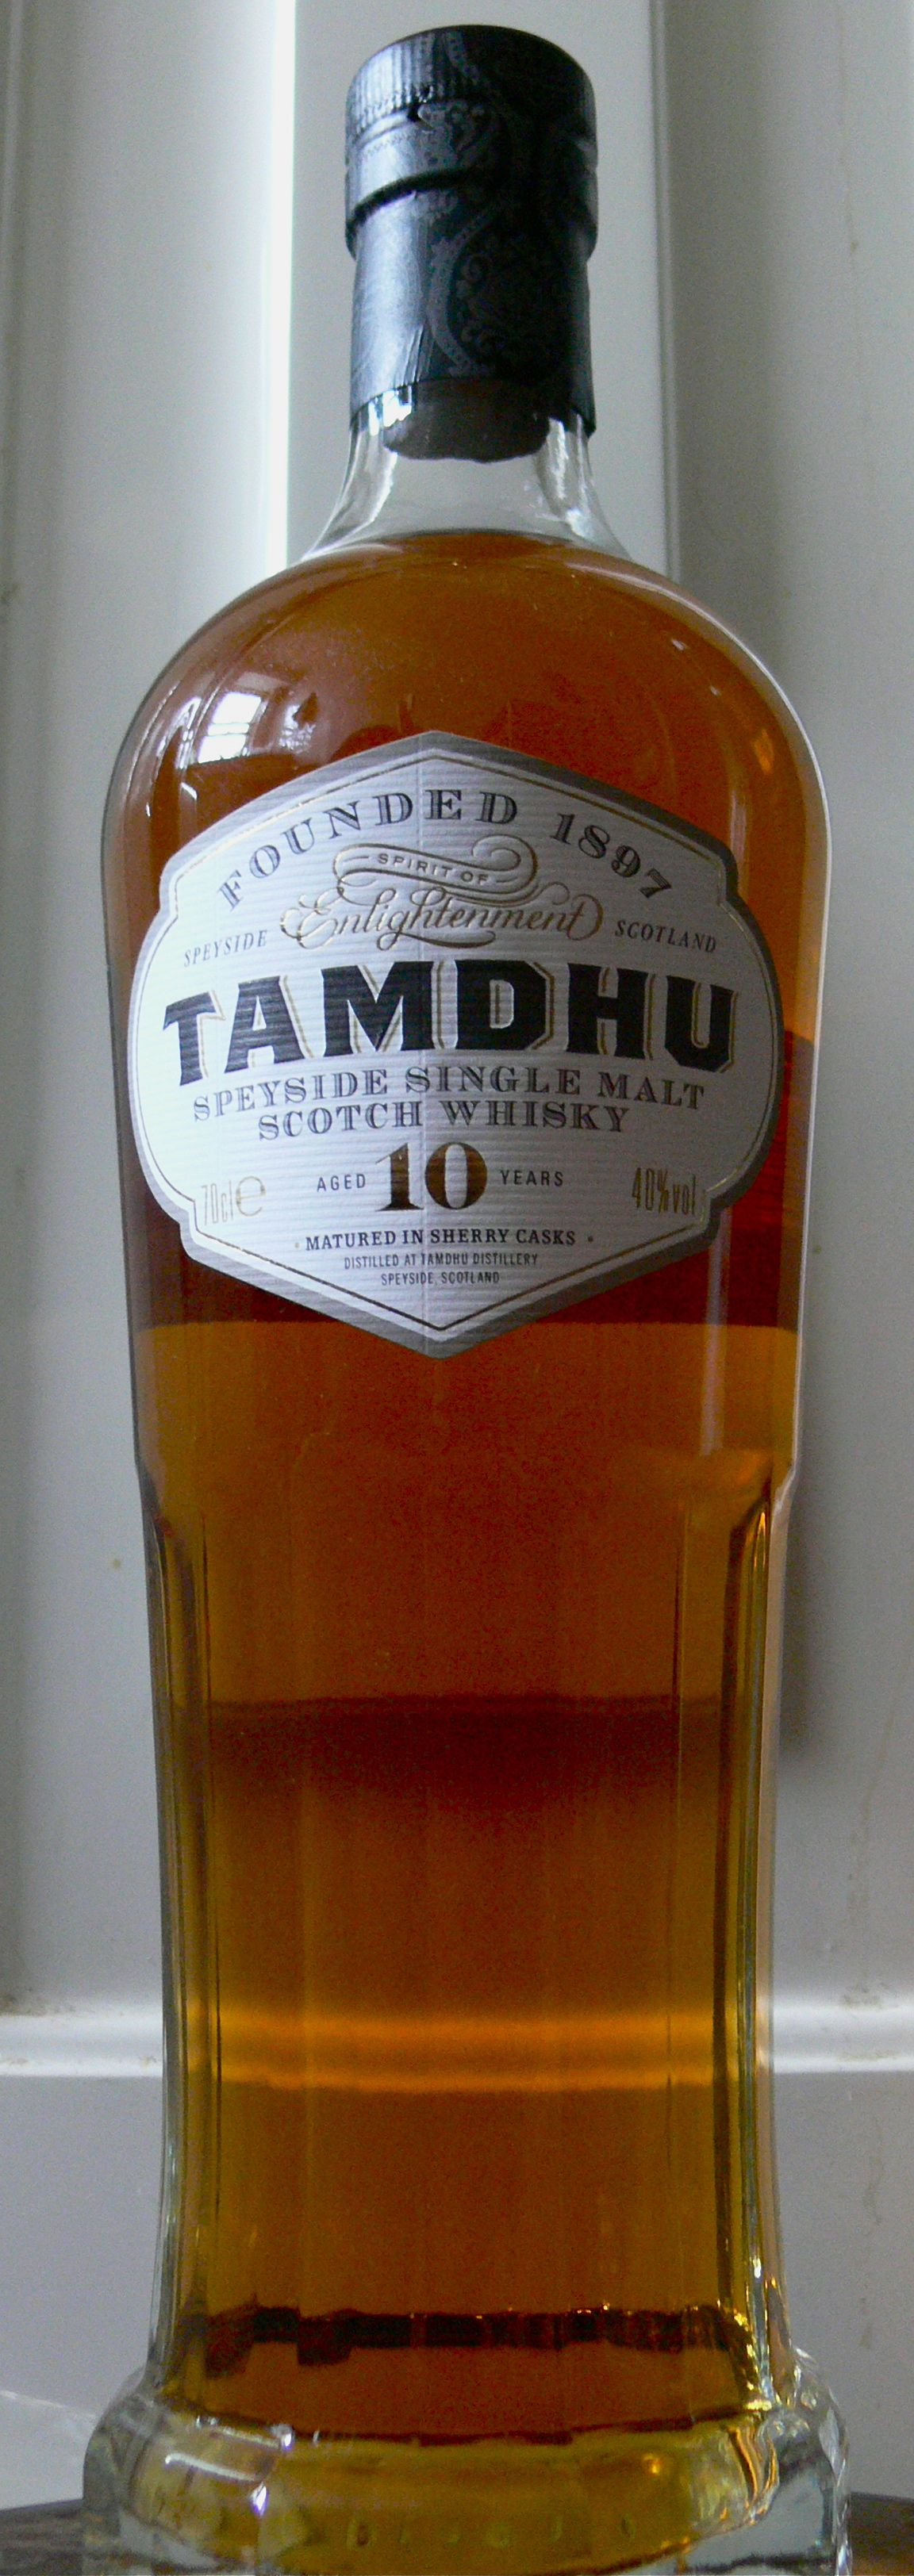 Tamdhu Single malt whisky